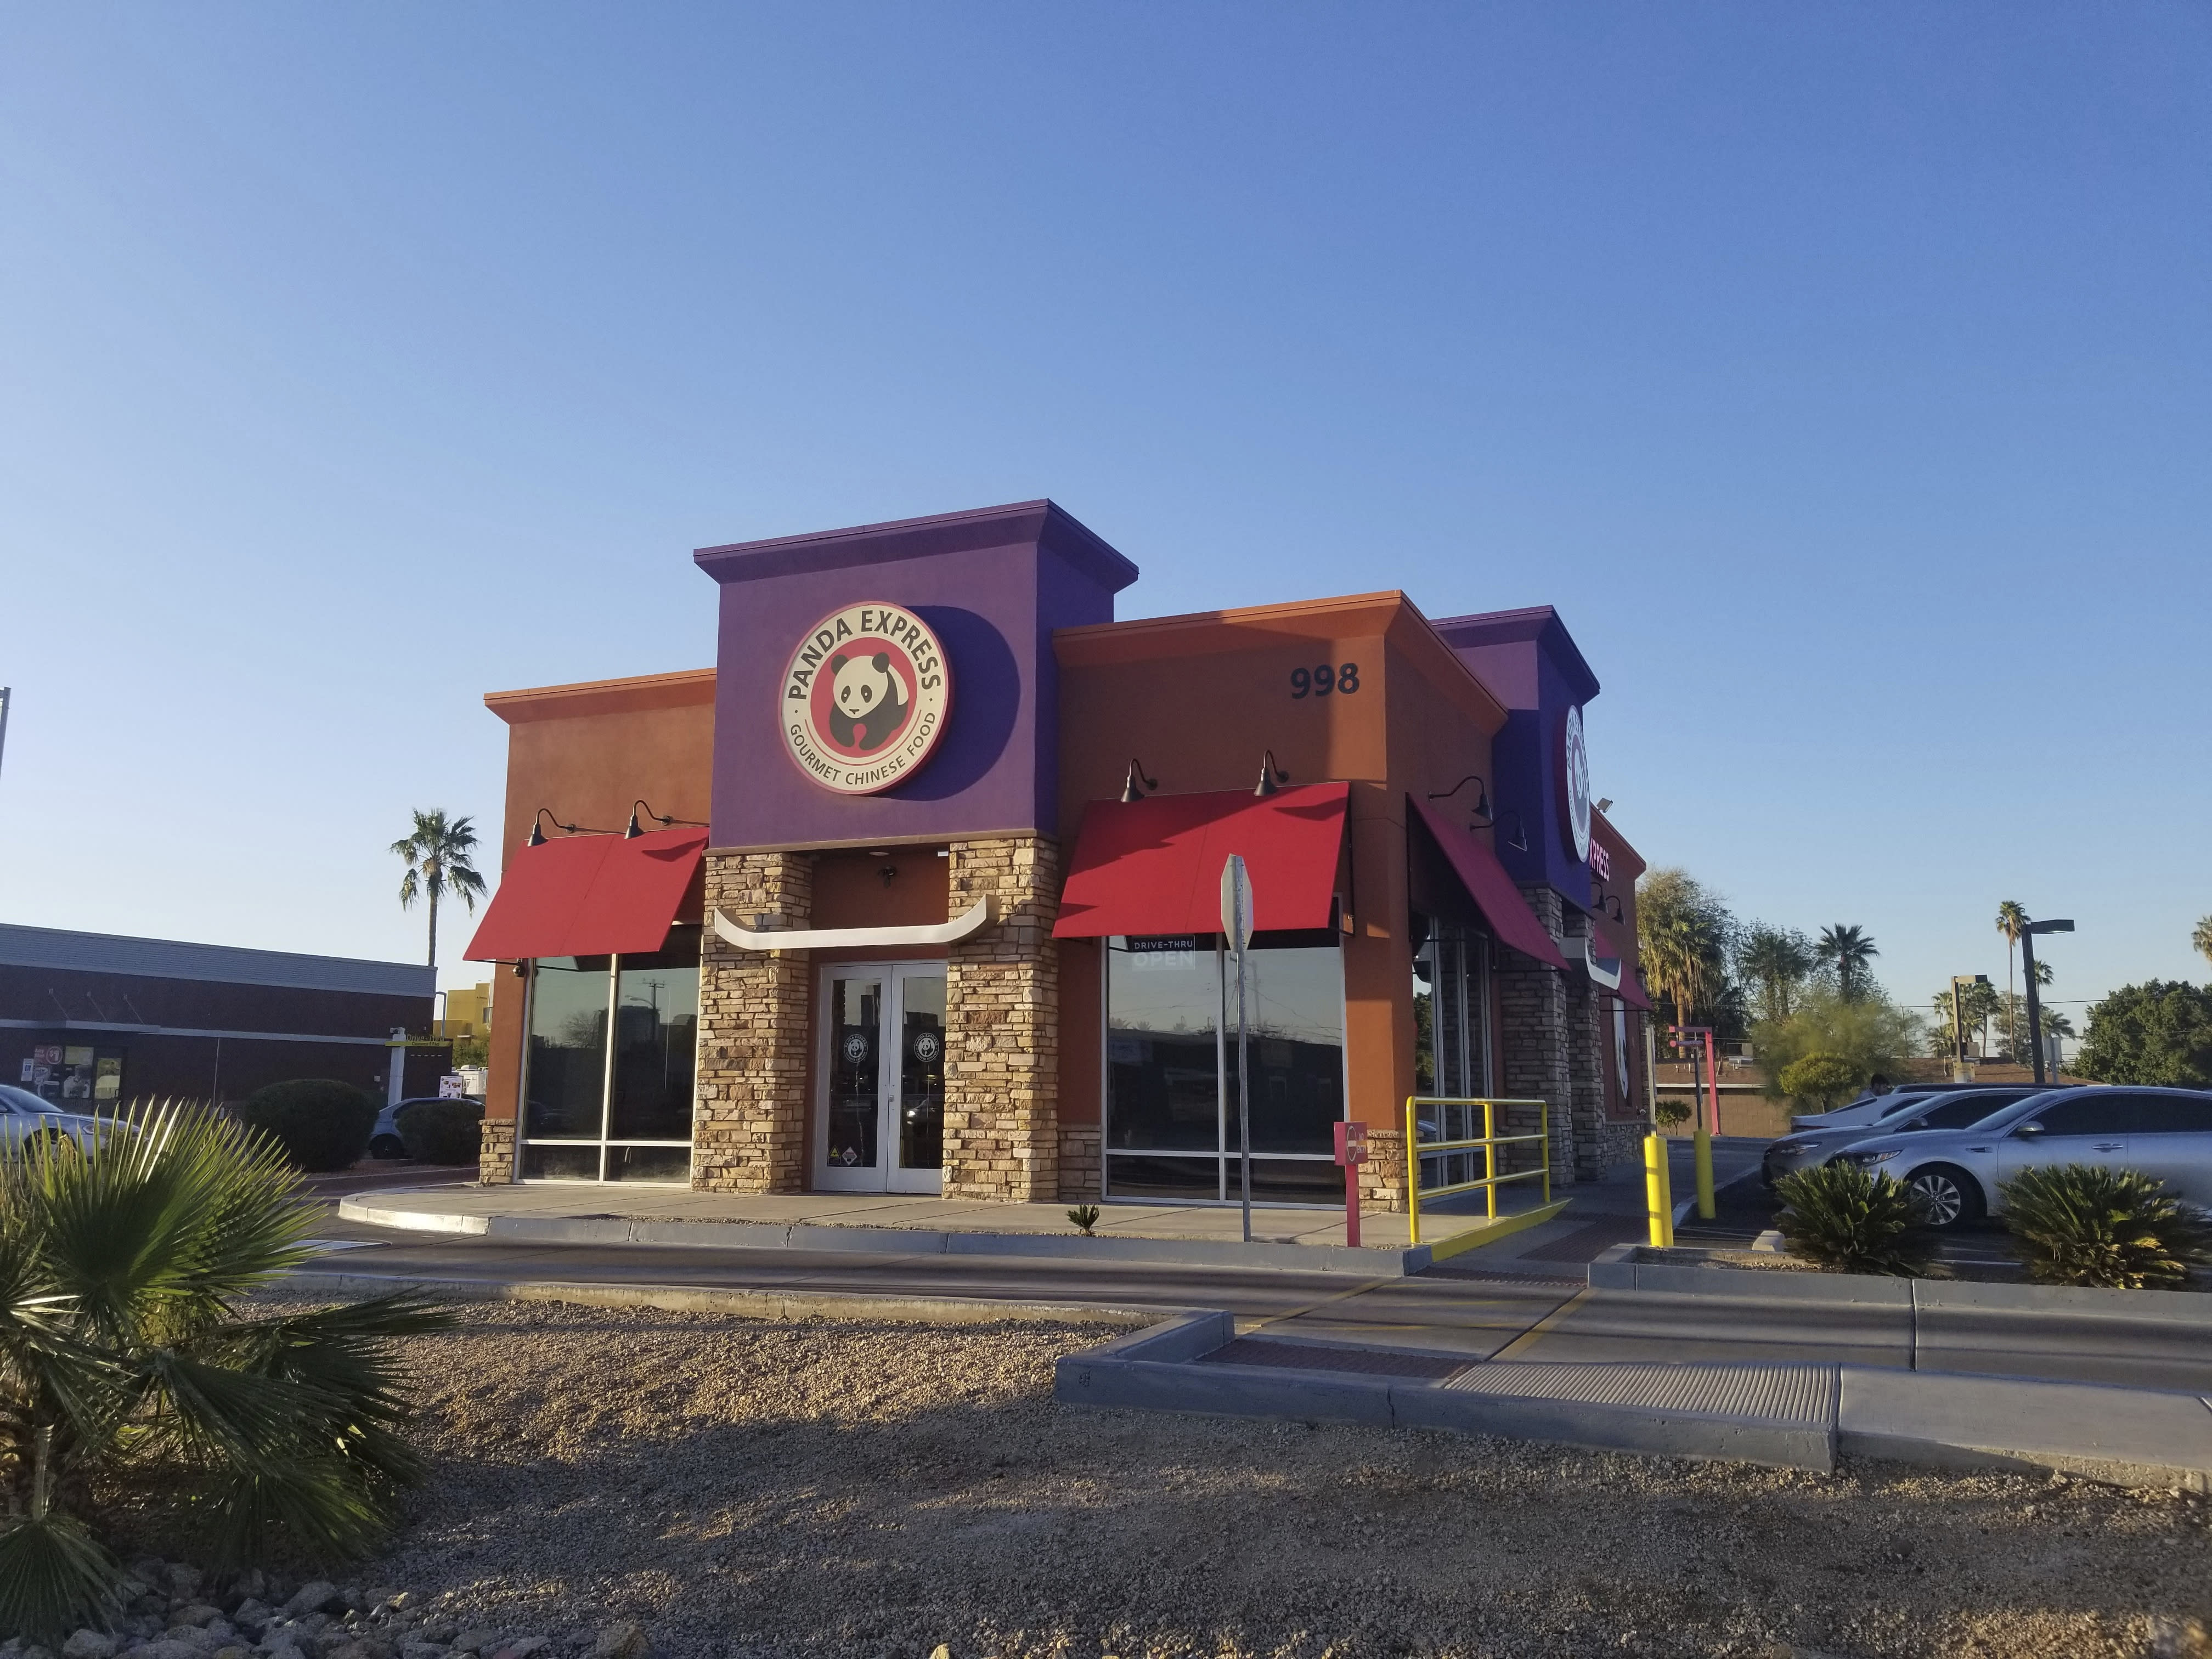 """This March 4, 2020 photo shows a Panda Express restaurant in Phoenix. Getting a trademark for the new name can lead to ugly and sometimes public clashes over ownership and cultural appropriation. In recent years, businesses have butted heads over whether a restaurant or food truck can legally own the right to use words rooted in Asian American Pacific Islander cultures like """"aloha"""" and """"poke."""" (AP Photo/Terry Tang)"""